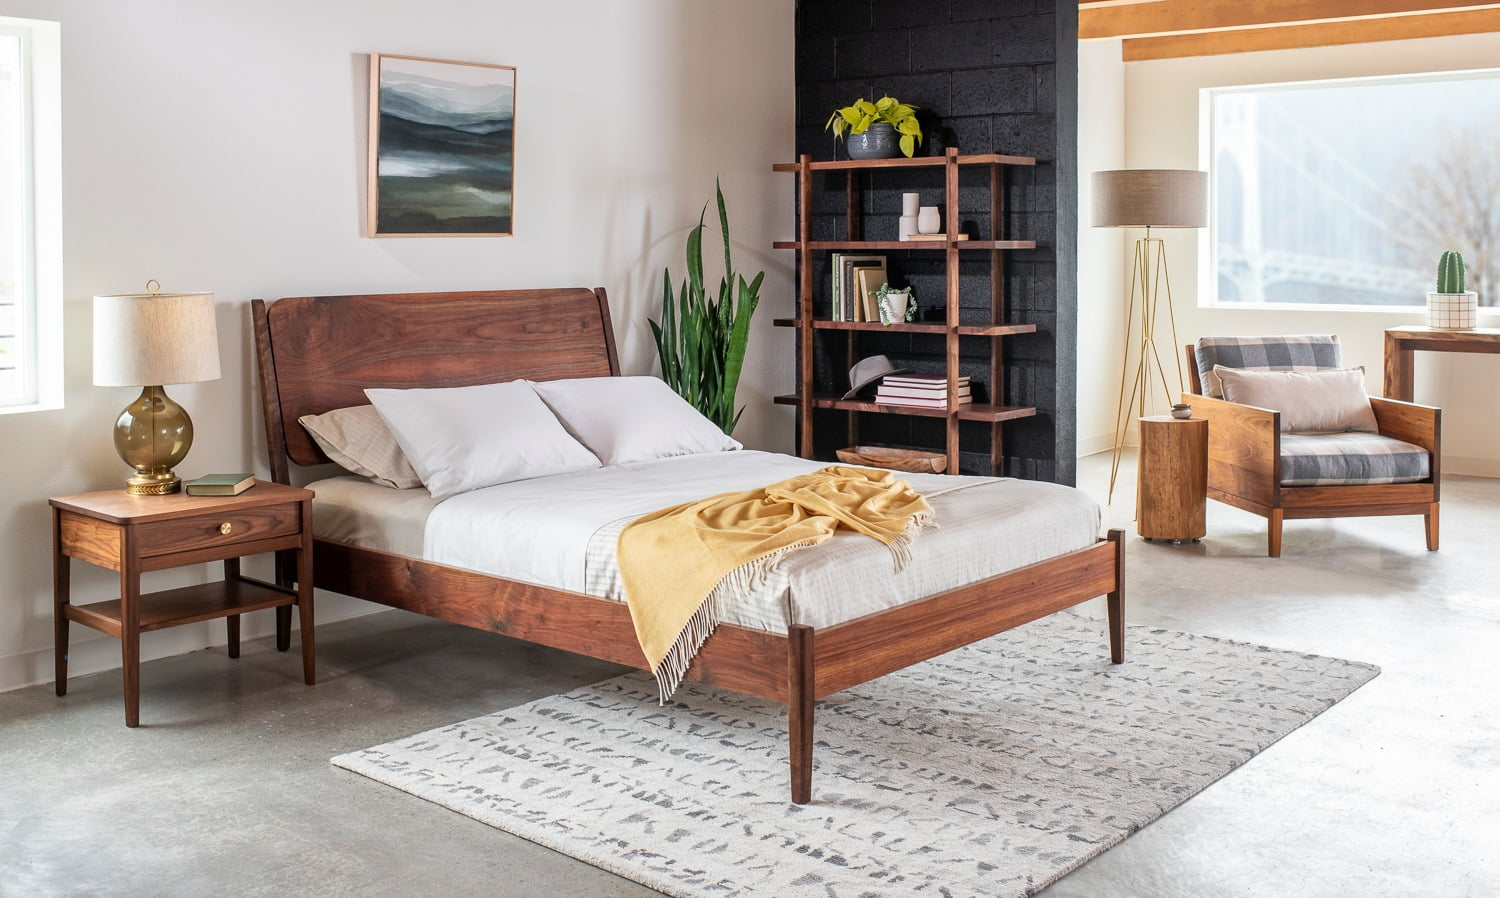 Wooden-framed bed, wooden sidetable, chair, and bookshelf, concrete floor, grey rug